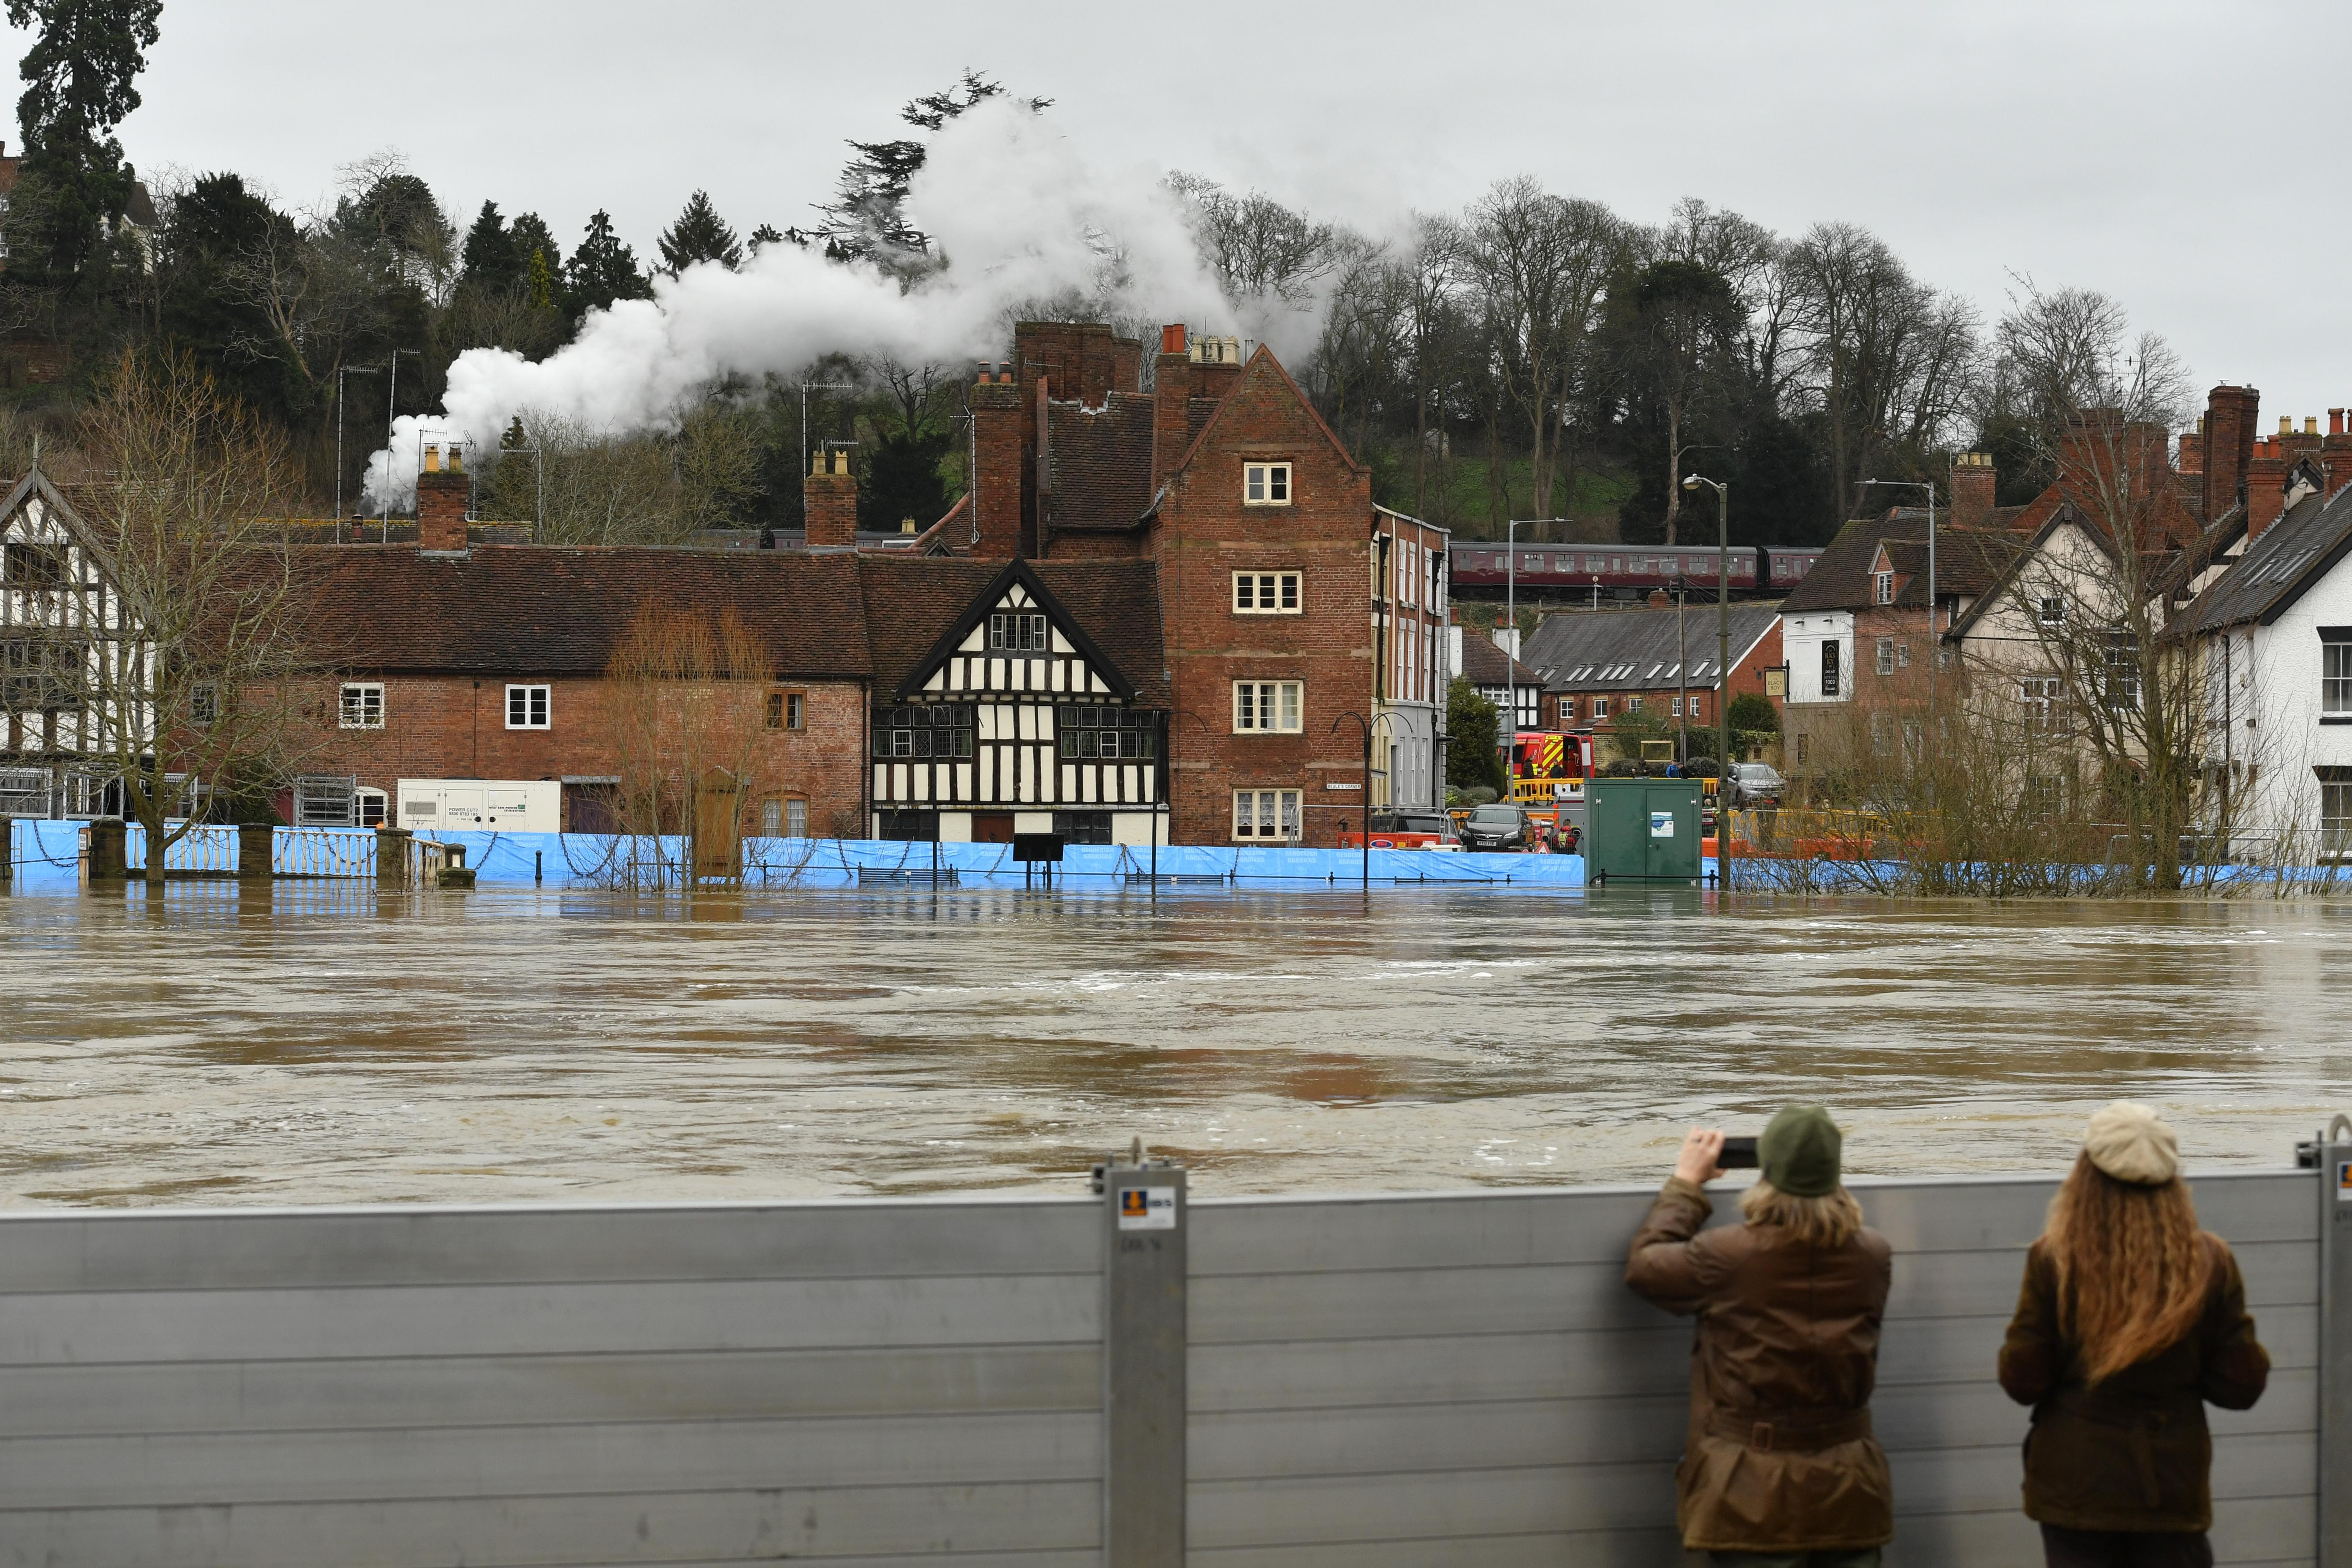 Flood-hit towns prepare for yet another deluge - but will barriers protect their homes?